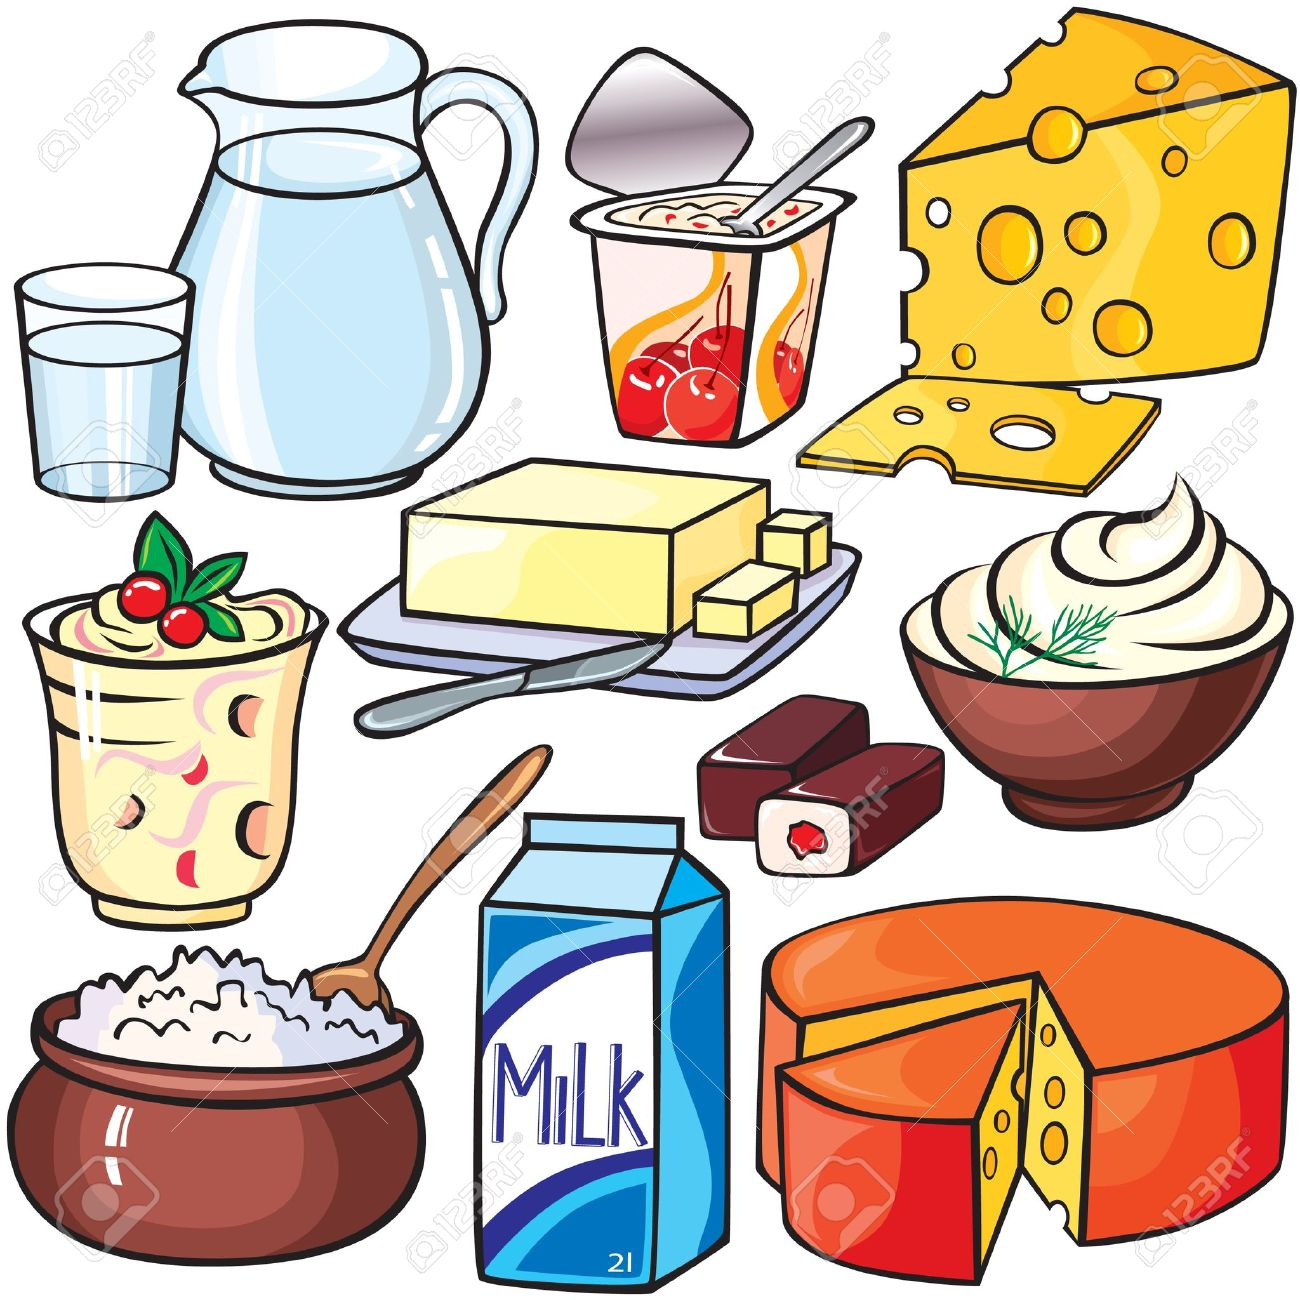 dairy milk clipart clip food yogurt cliparts sour storage cheese many clipground صور cartoon foods